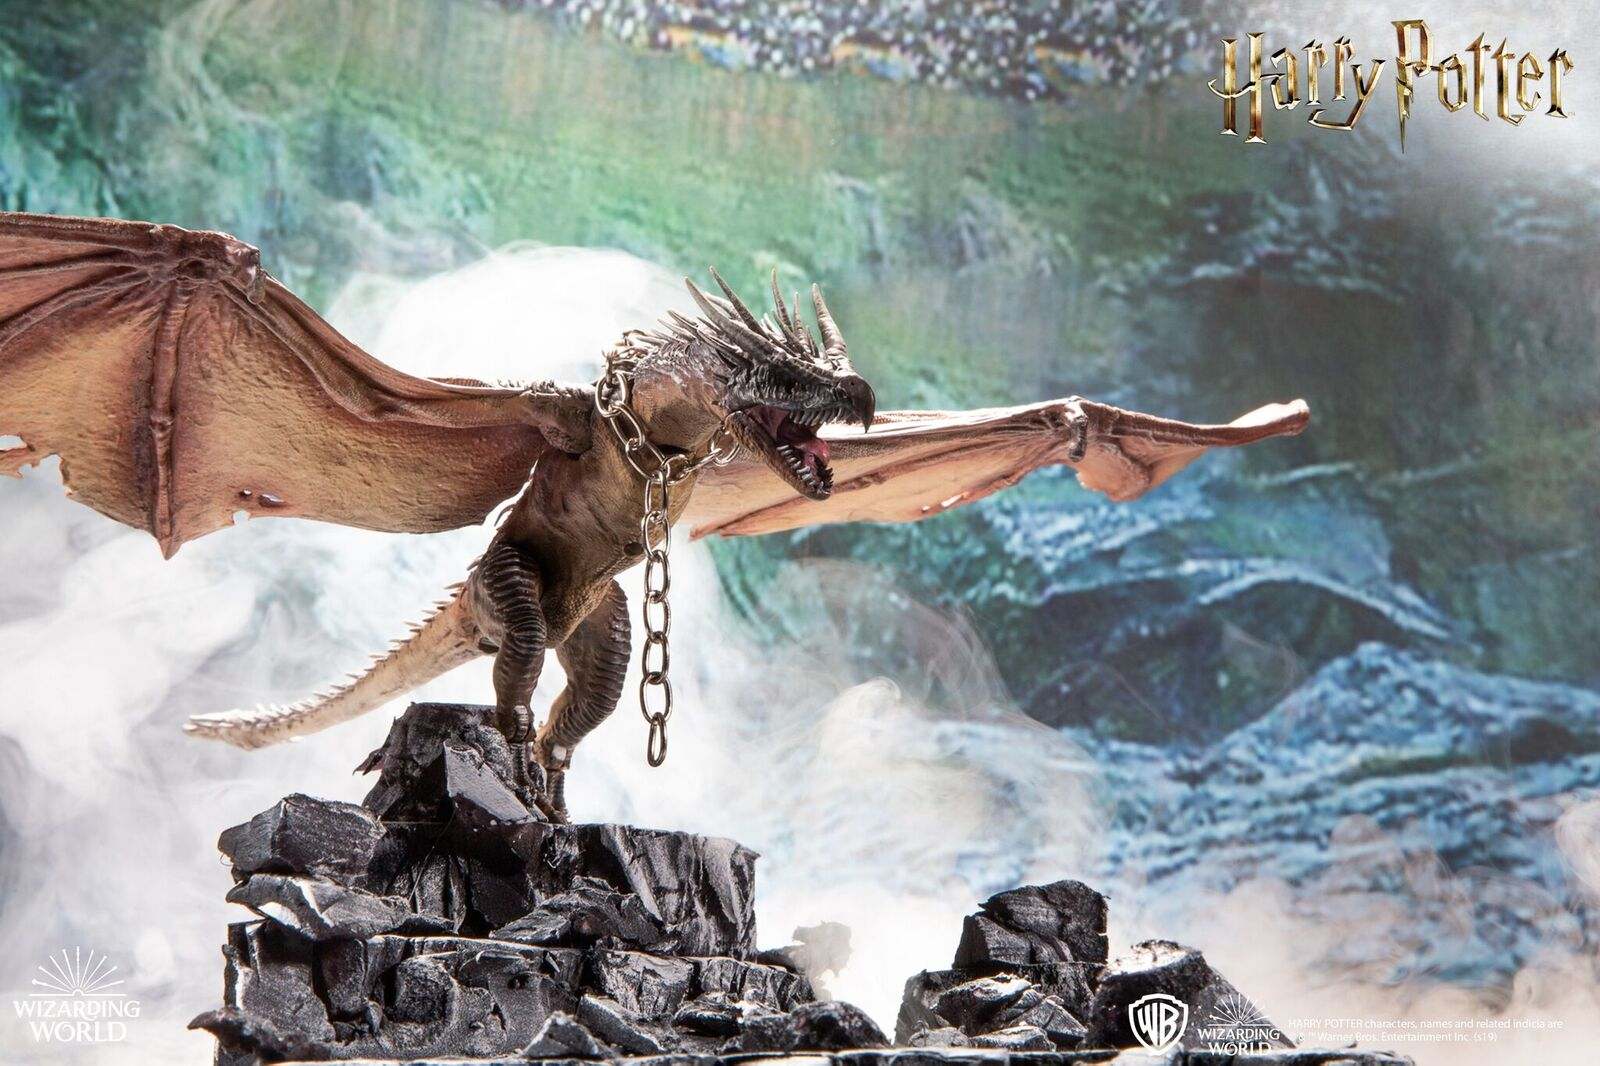 This Hungarian Horntail looks ready to defend its golden egg in this new figure from McFarlane Toys' creature line.